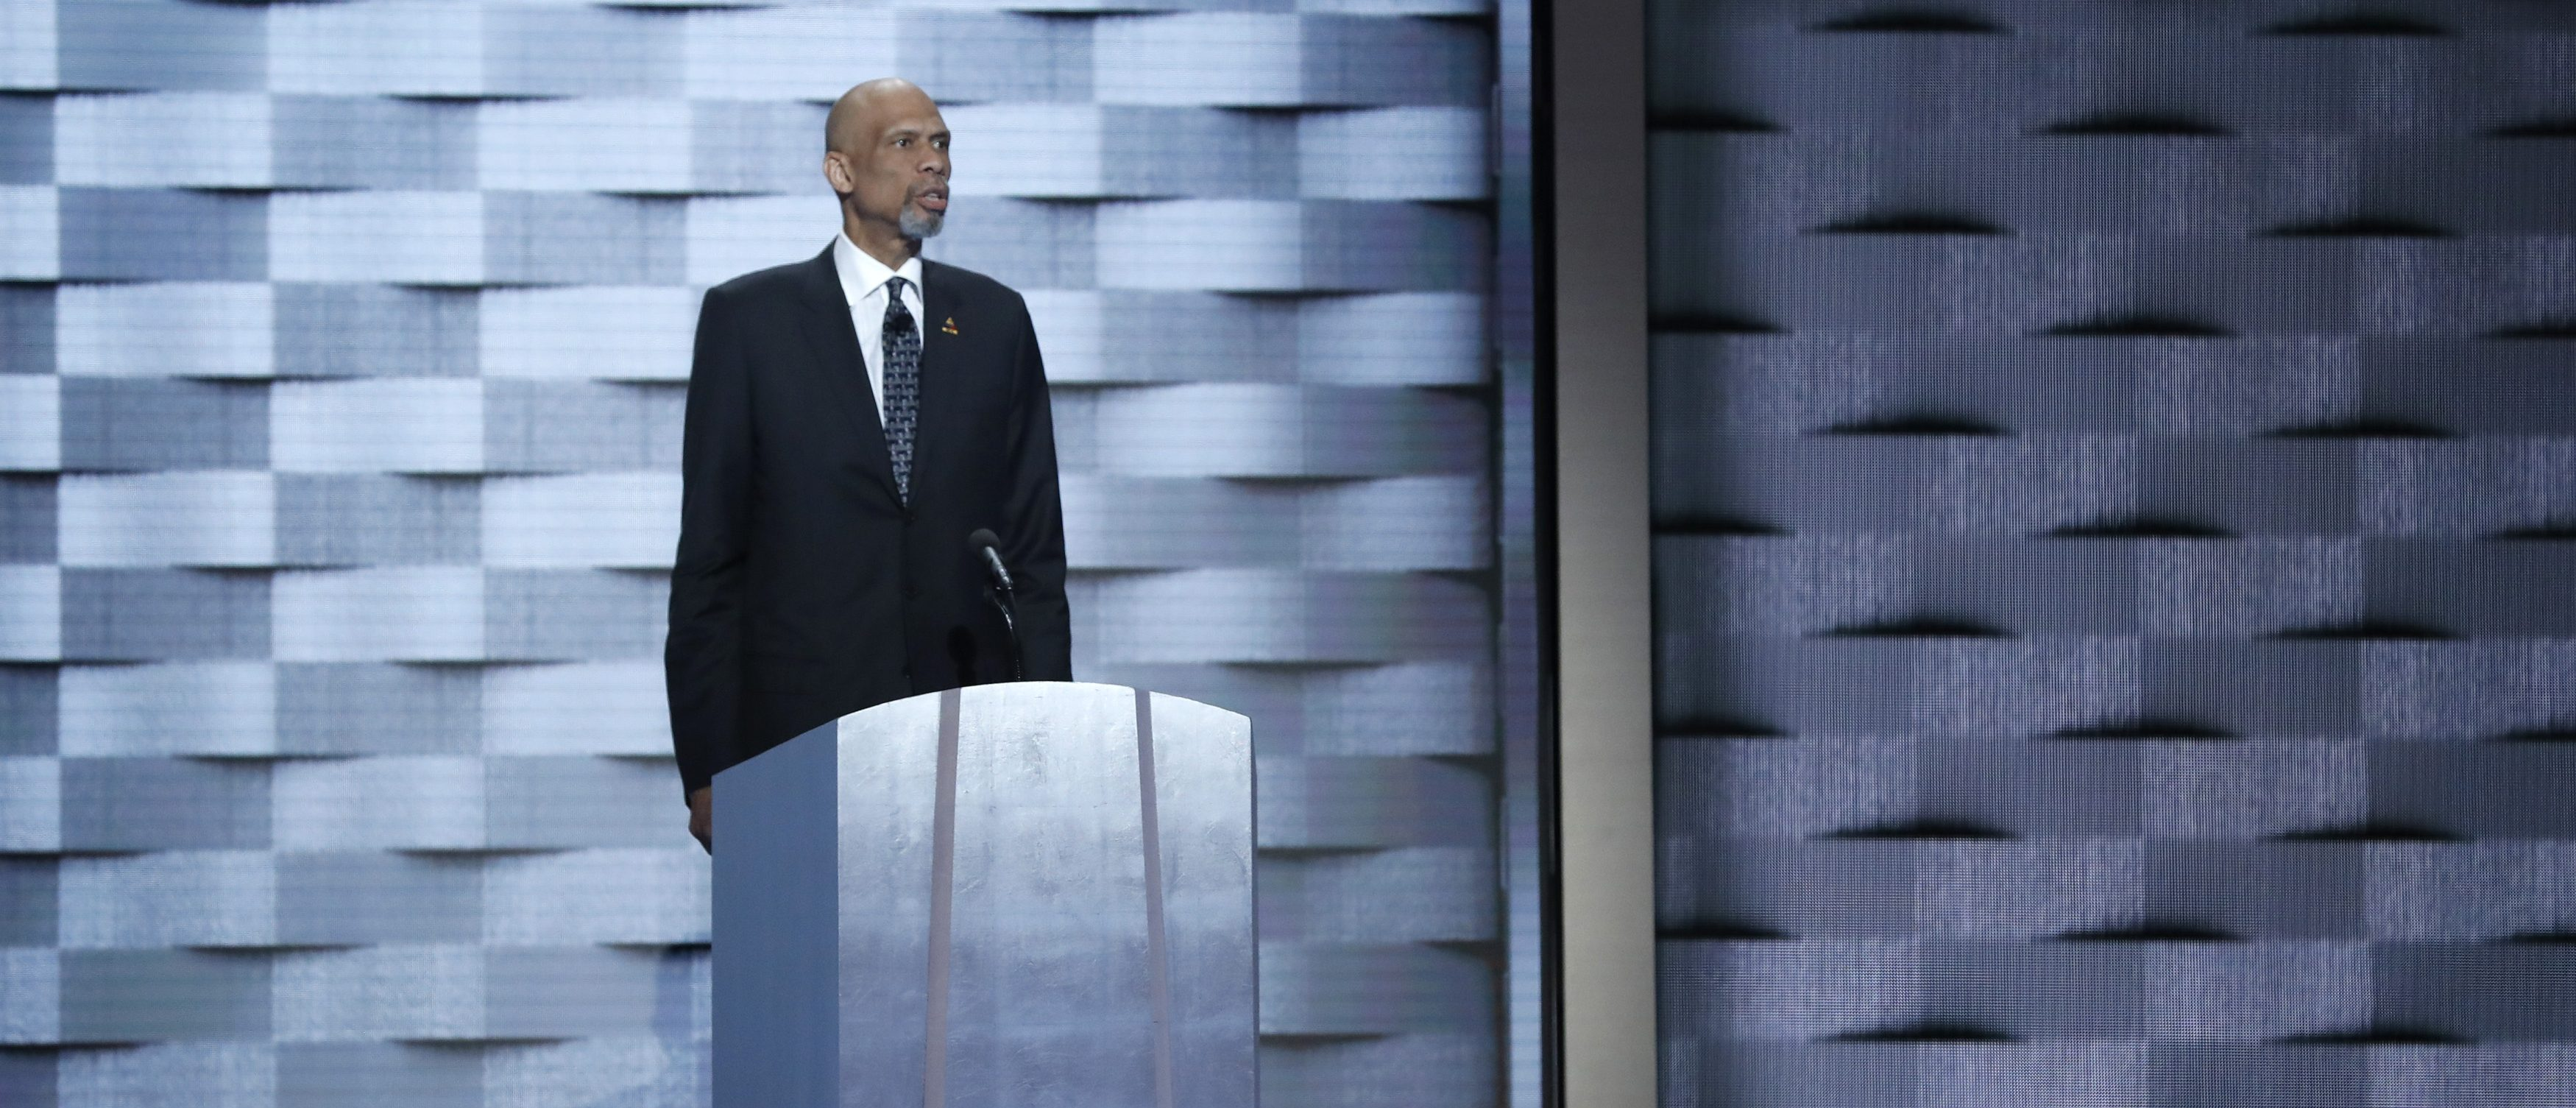 Retired NBA basketball star Kareem Abdul-Jabaar speaks on the fourth and final night at the Democratic National Convention in Philadelphia, Pennsylvania, U.S. July 28, 2016. REUTERS/Mark Kauzlarich - RTSK6CT